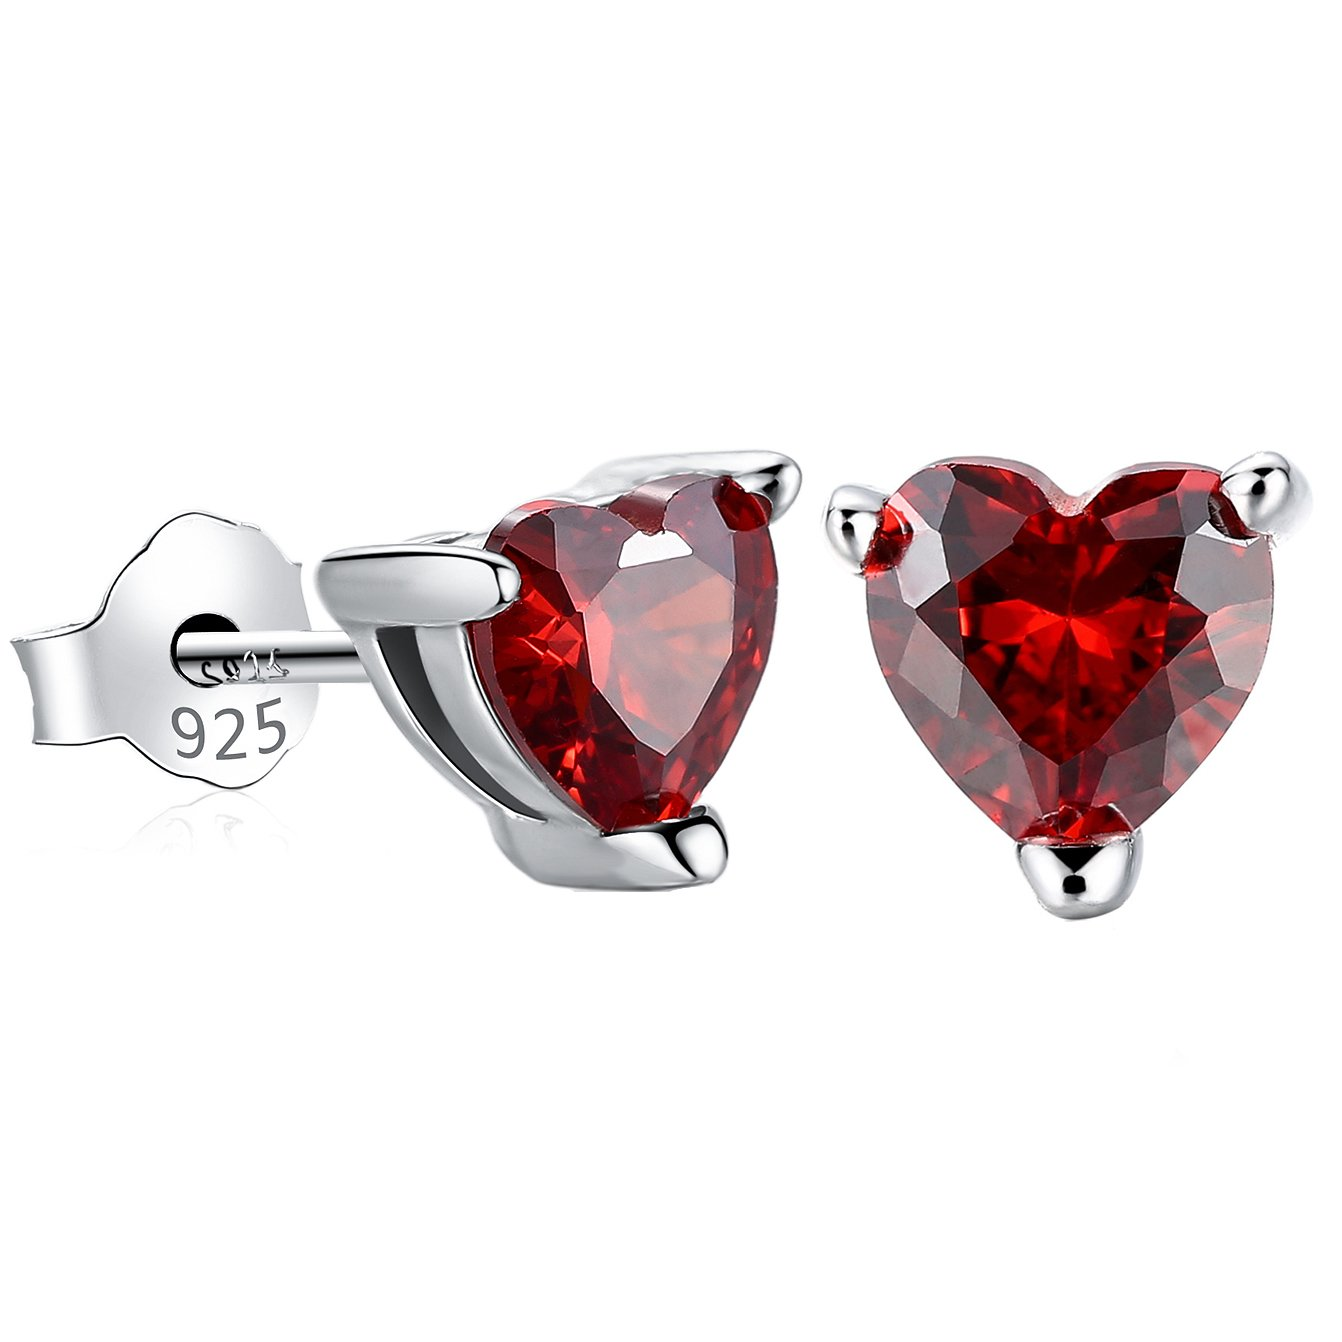 Red heart earrings sterling